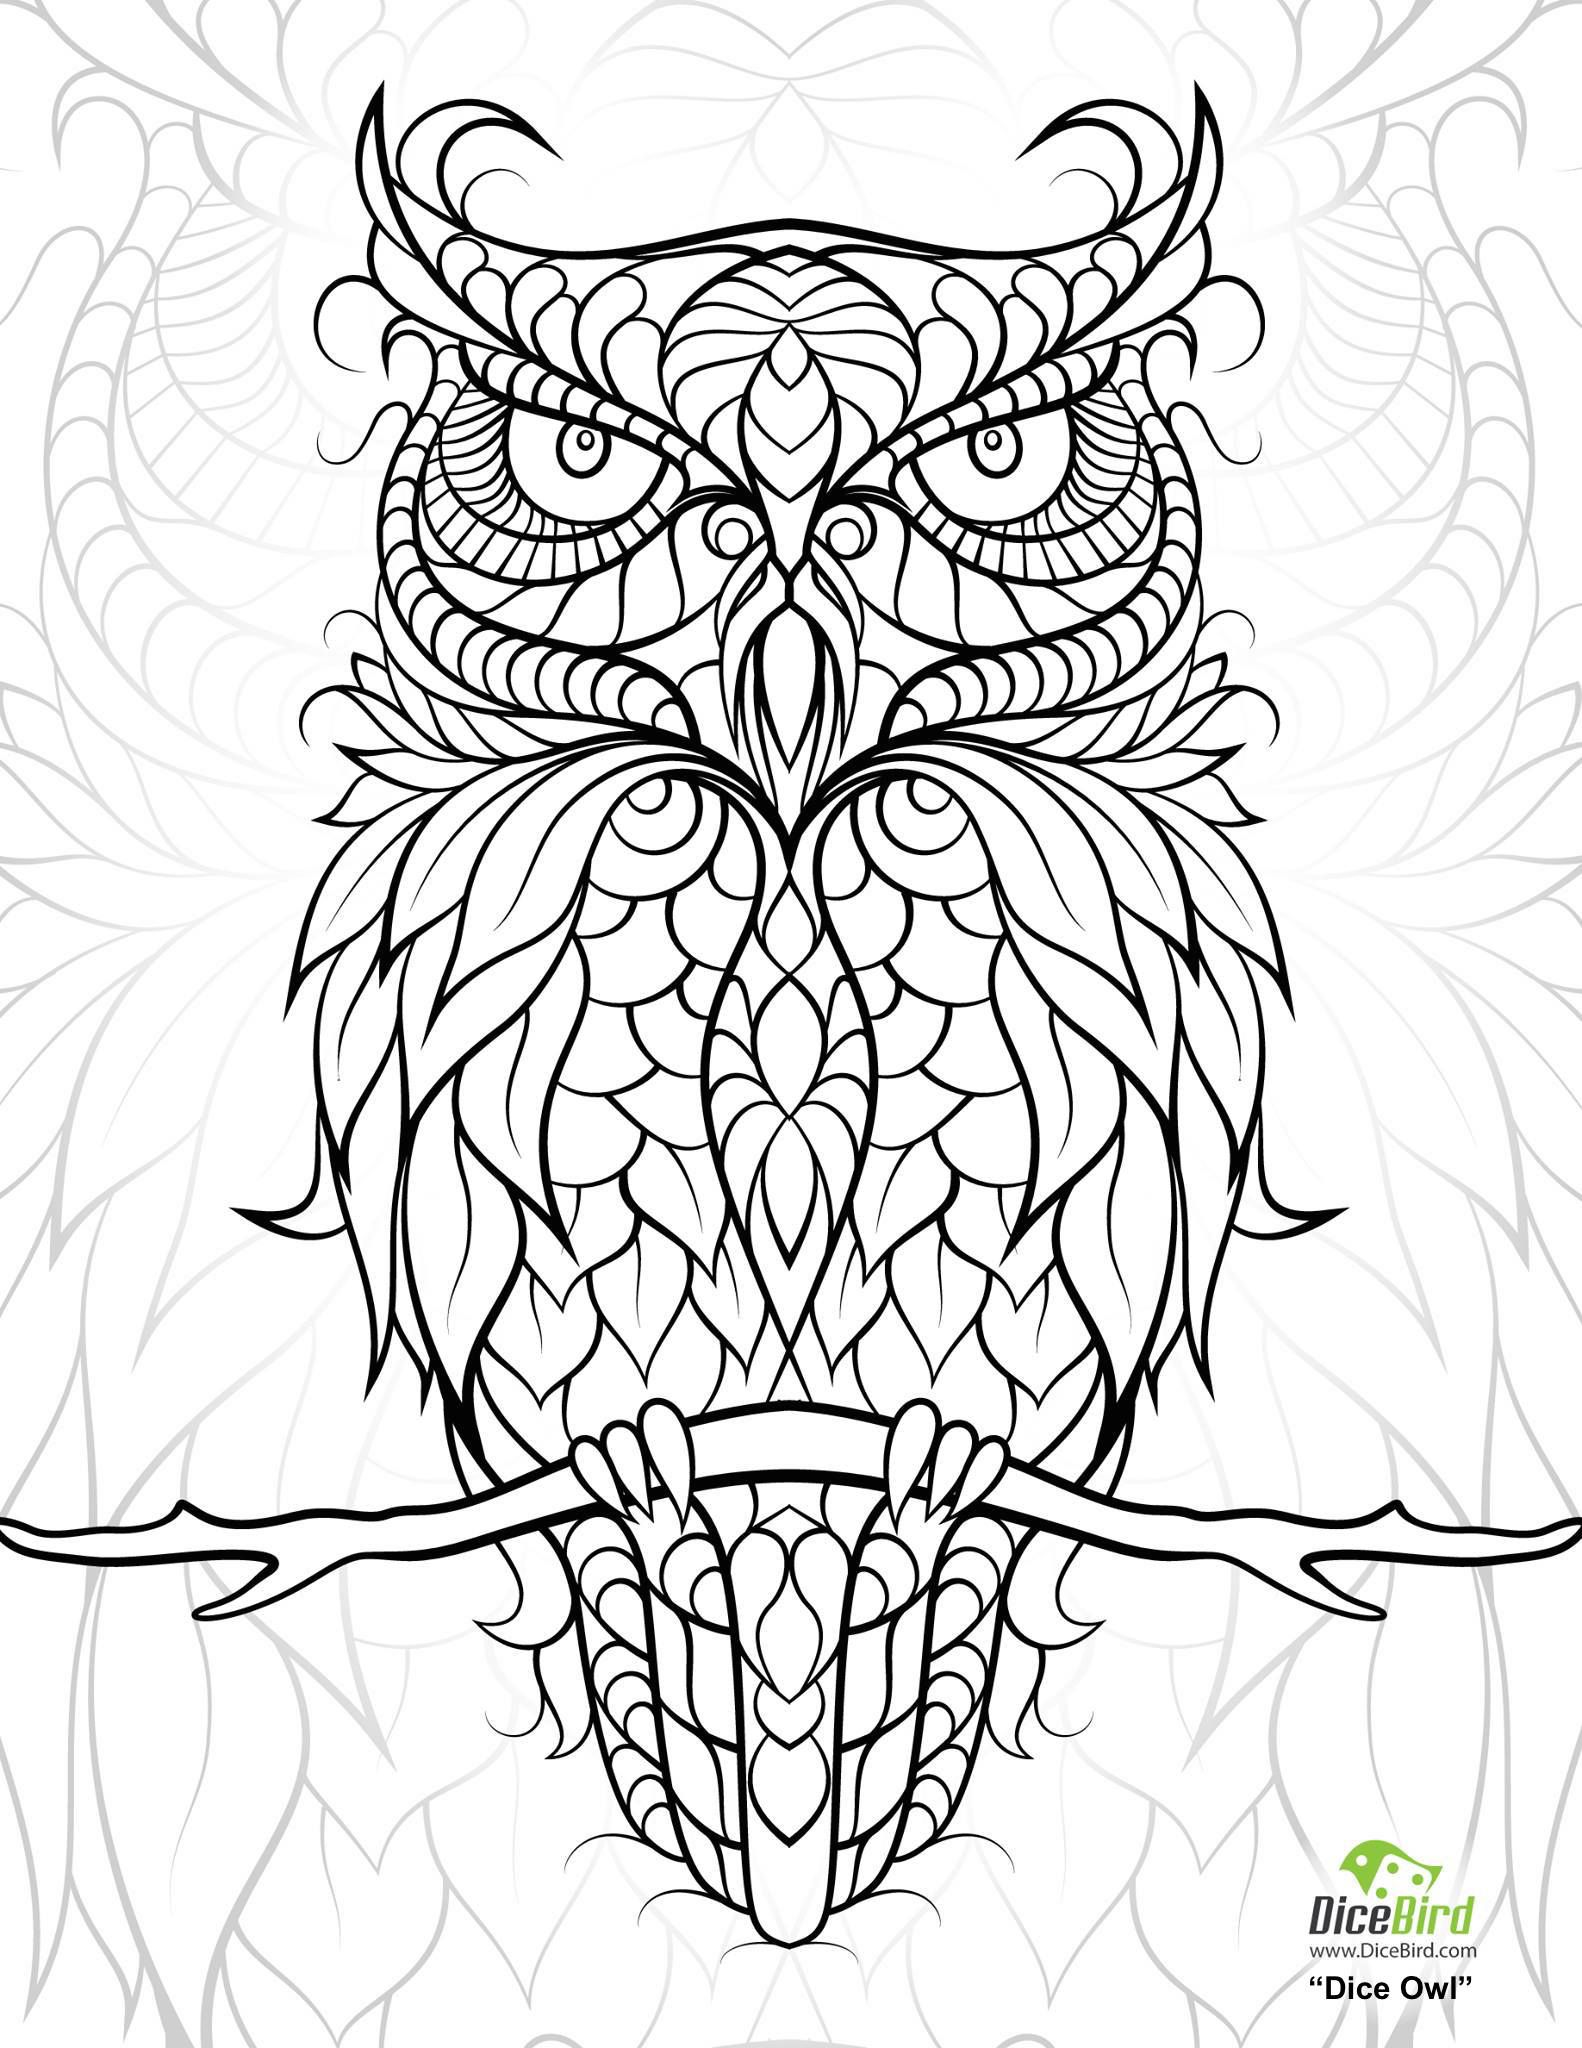 diceowlfree printable adult coloring